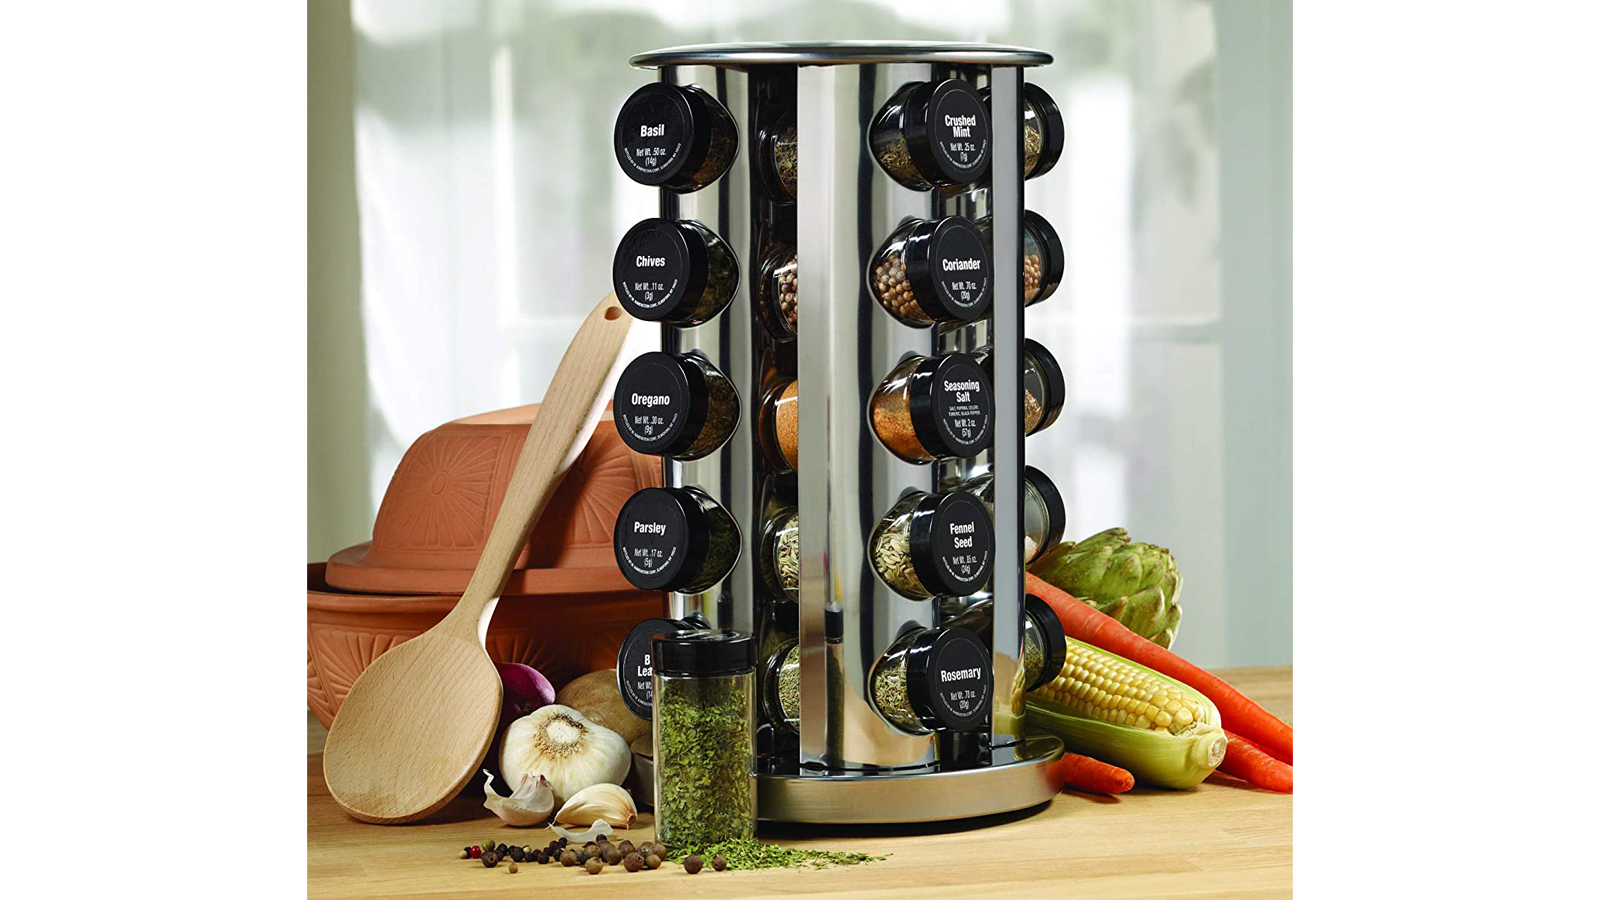 Spice Up Your Kitchen (and Your Cooking) with This Revolving Spice Rack Tower